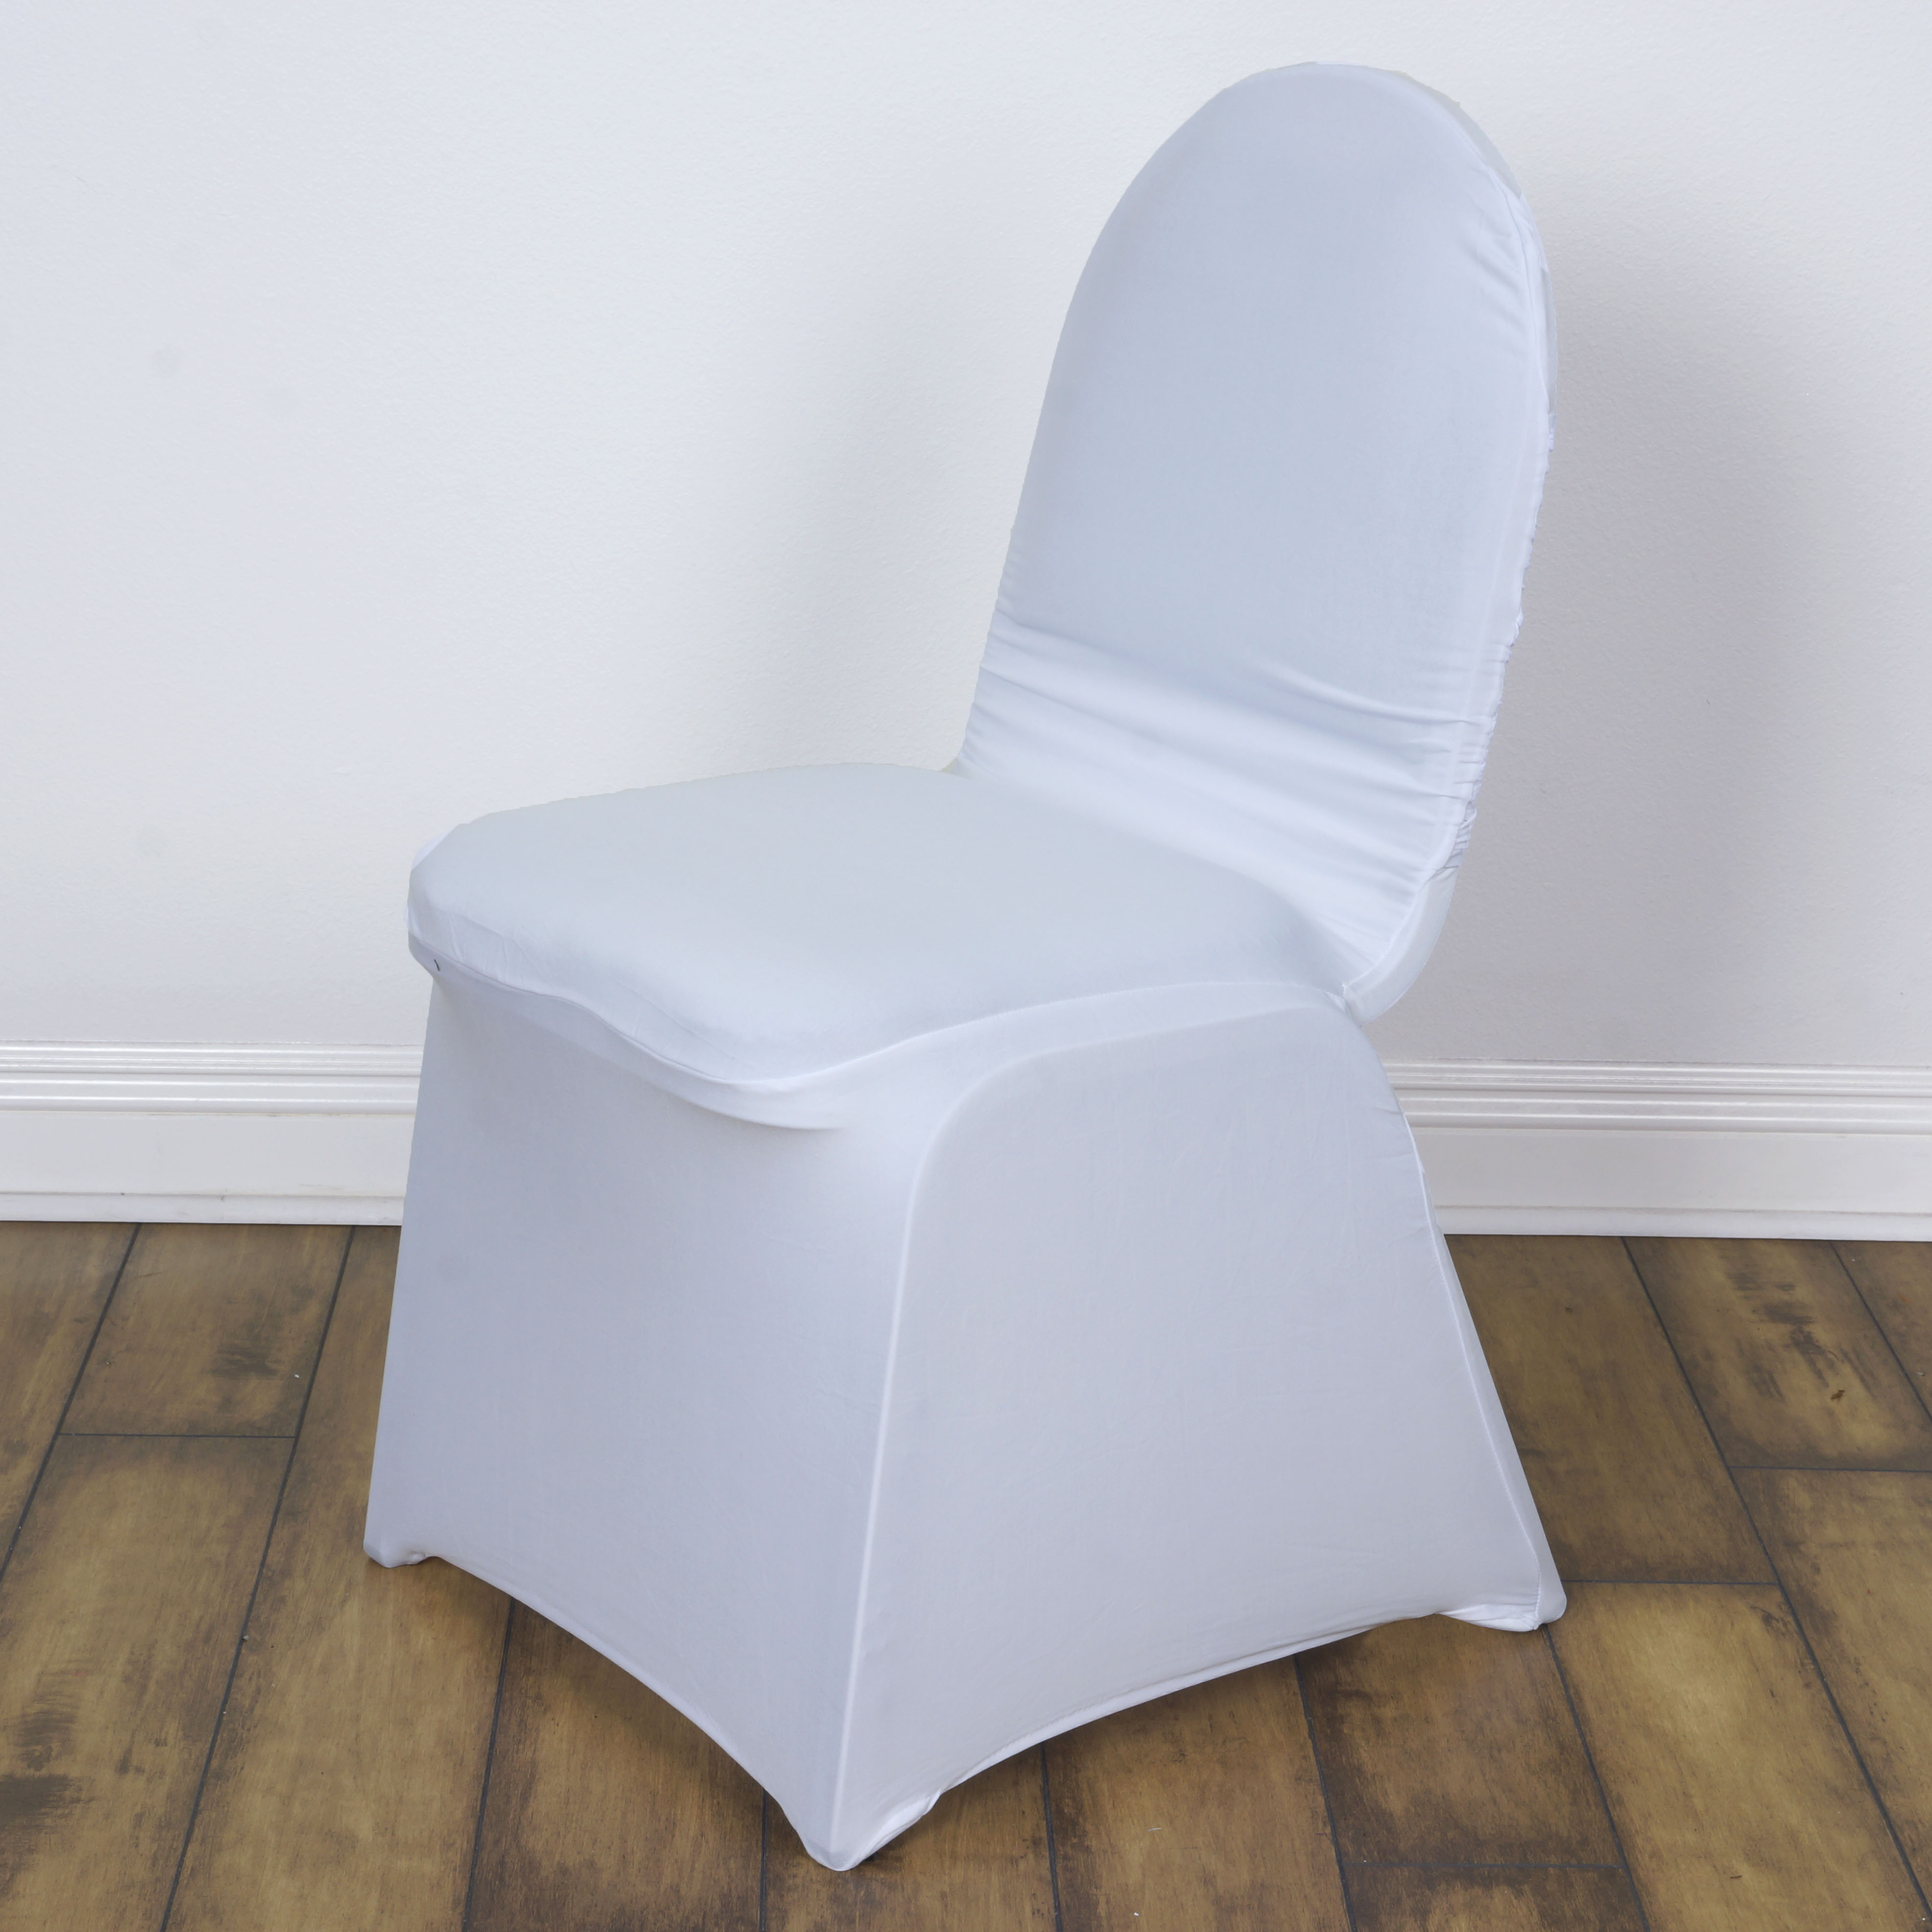 75 pcs madrid banquet chair covers with crisscross design for Chair covers for wedding design